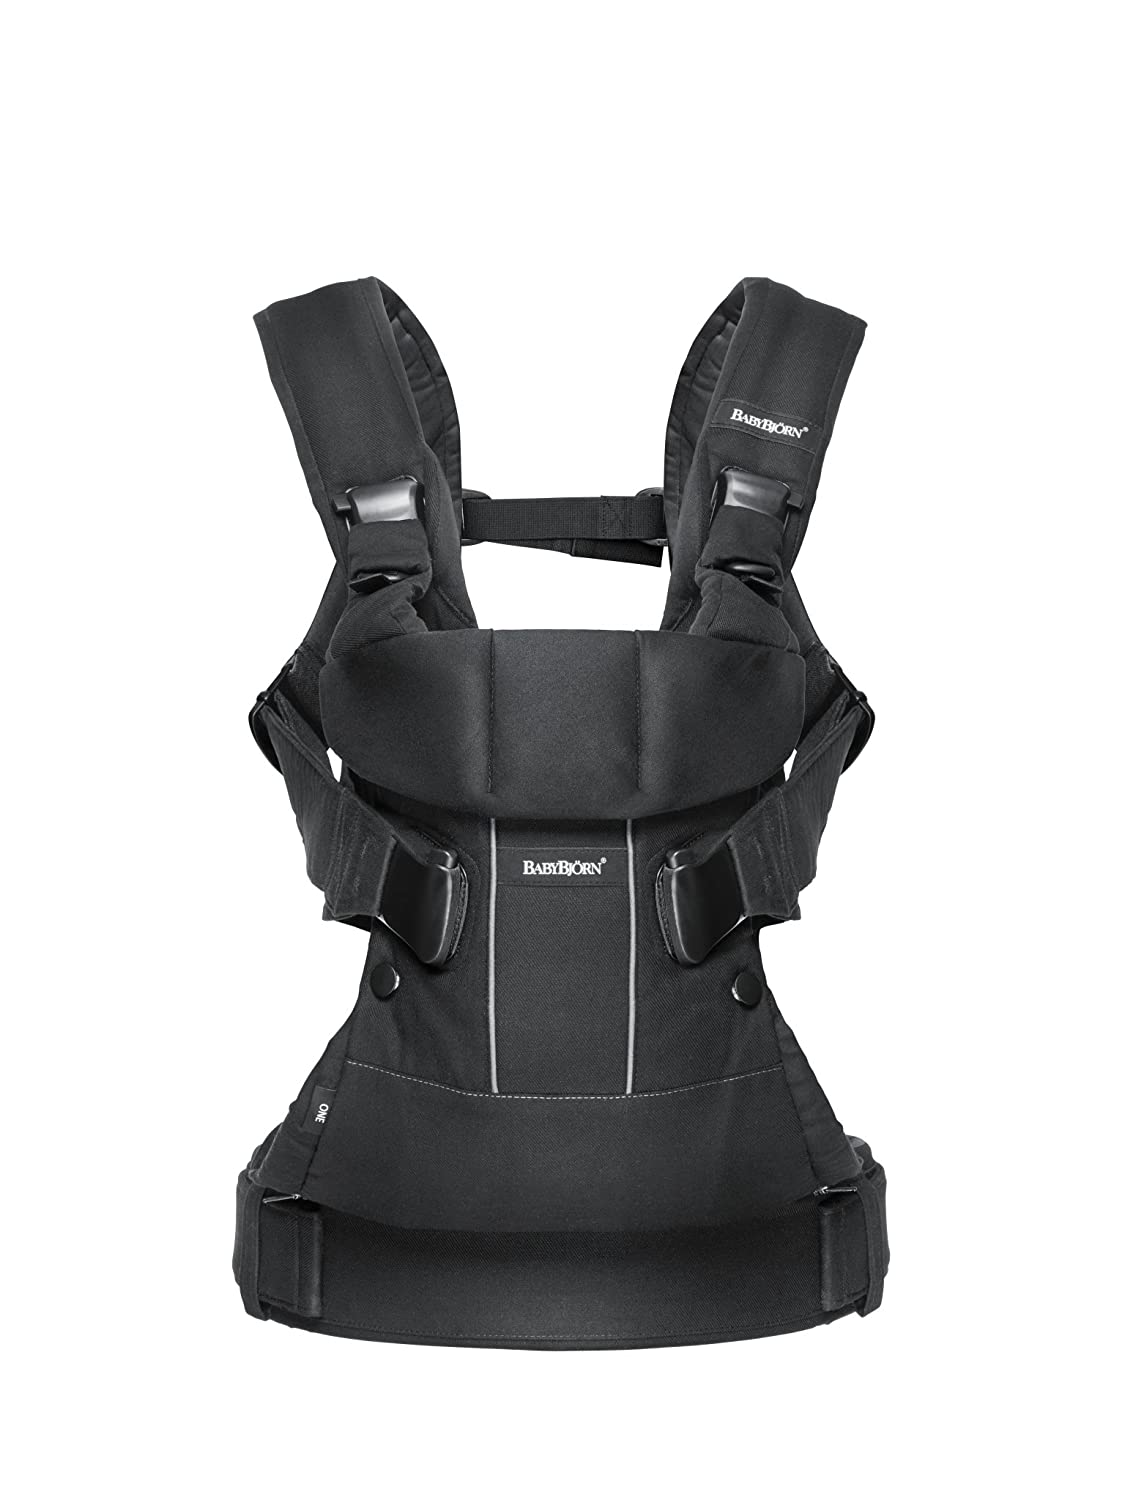 15dc42a1f03 Amazon.com   BABYBJORN Baby Carrier One - Black